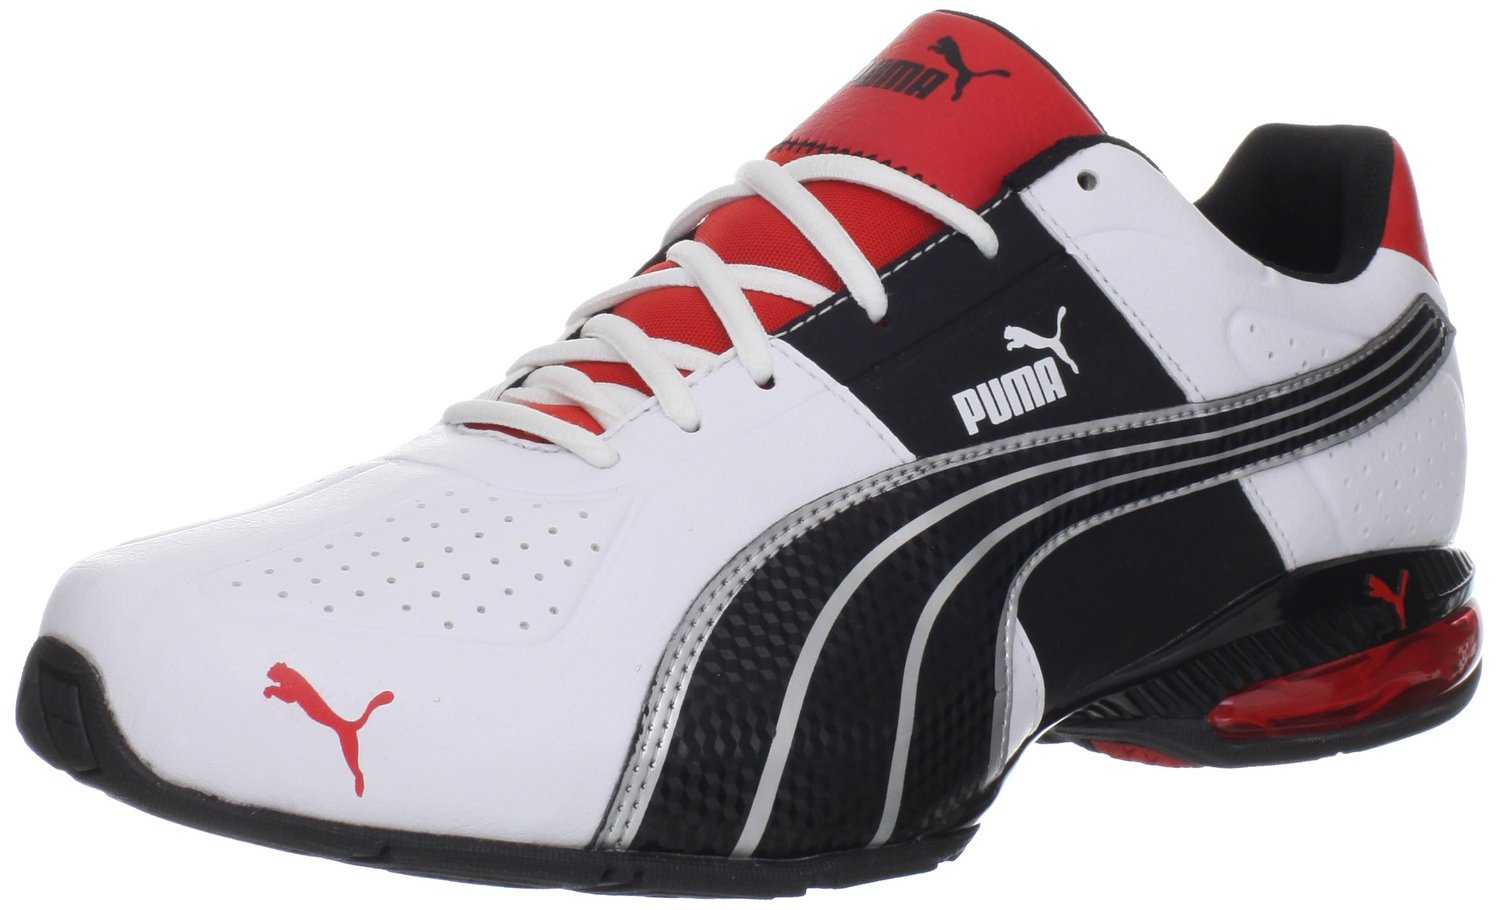 Puma Tennis Shoes Uk